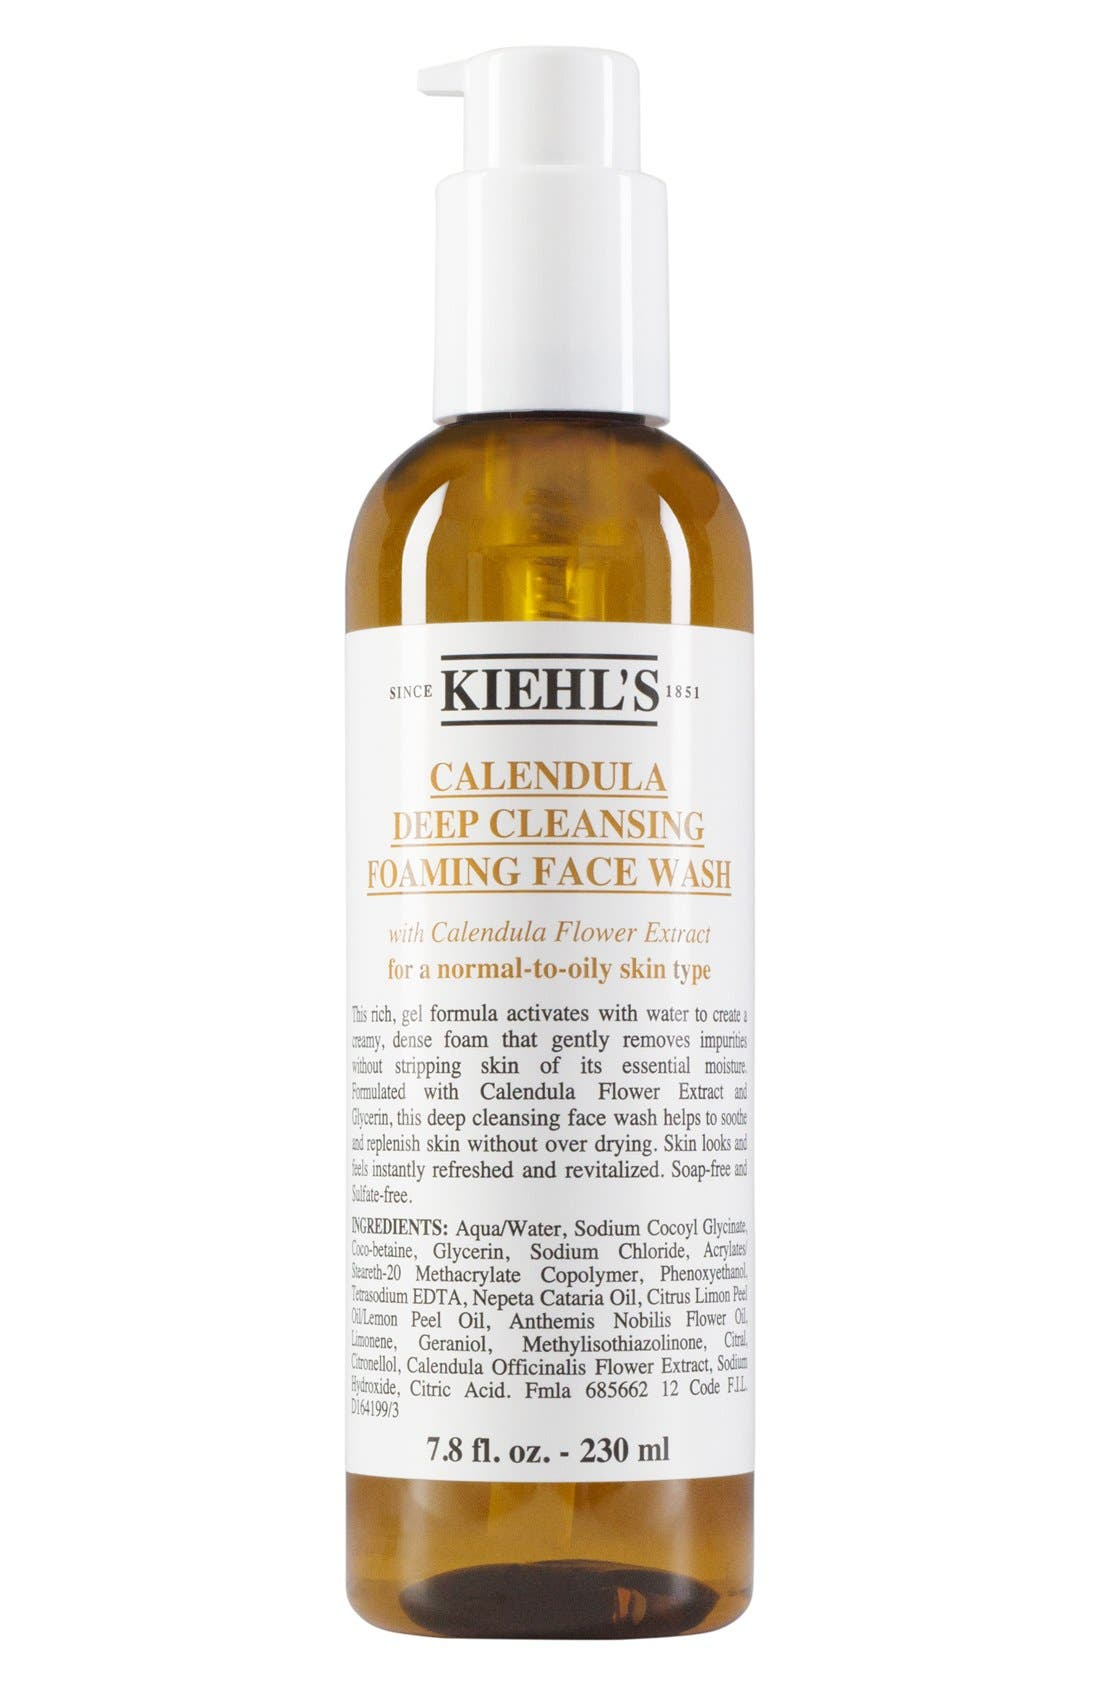 Kiehl's Since 1851 Calendula Deep Cleansing Foaming Face Wash for Normal-to-Oily Skin